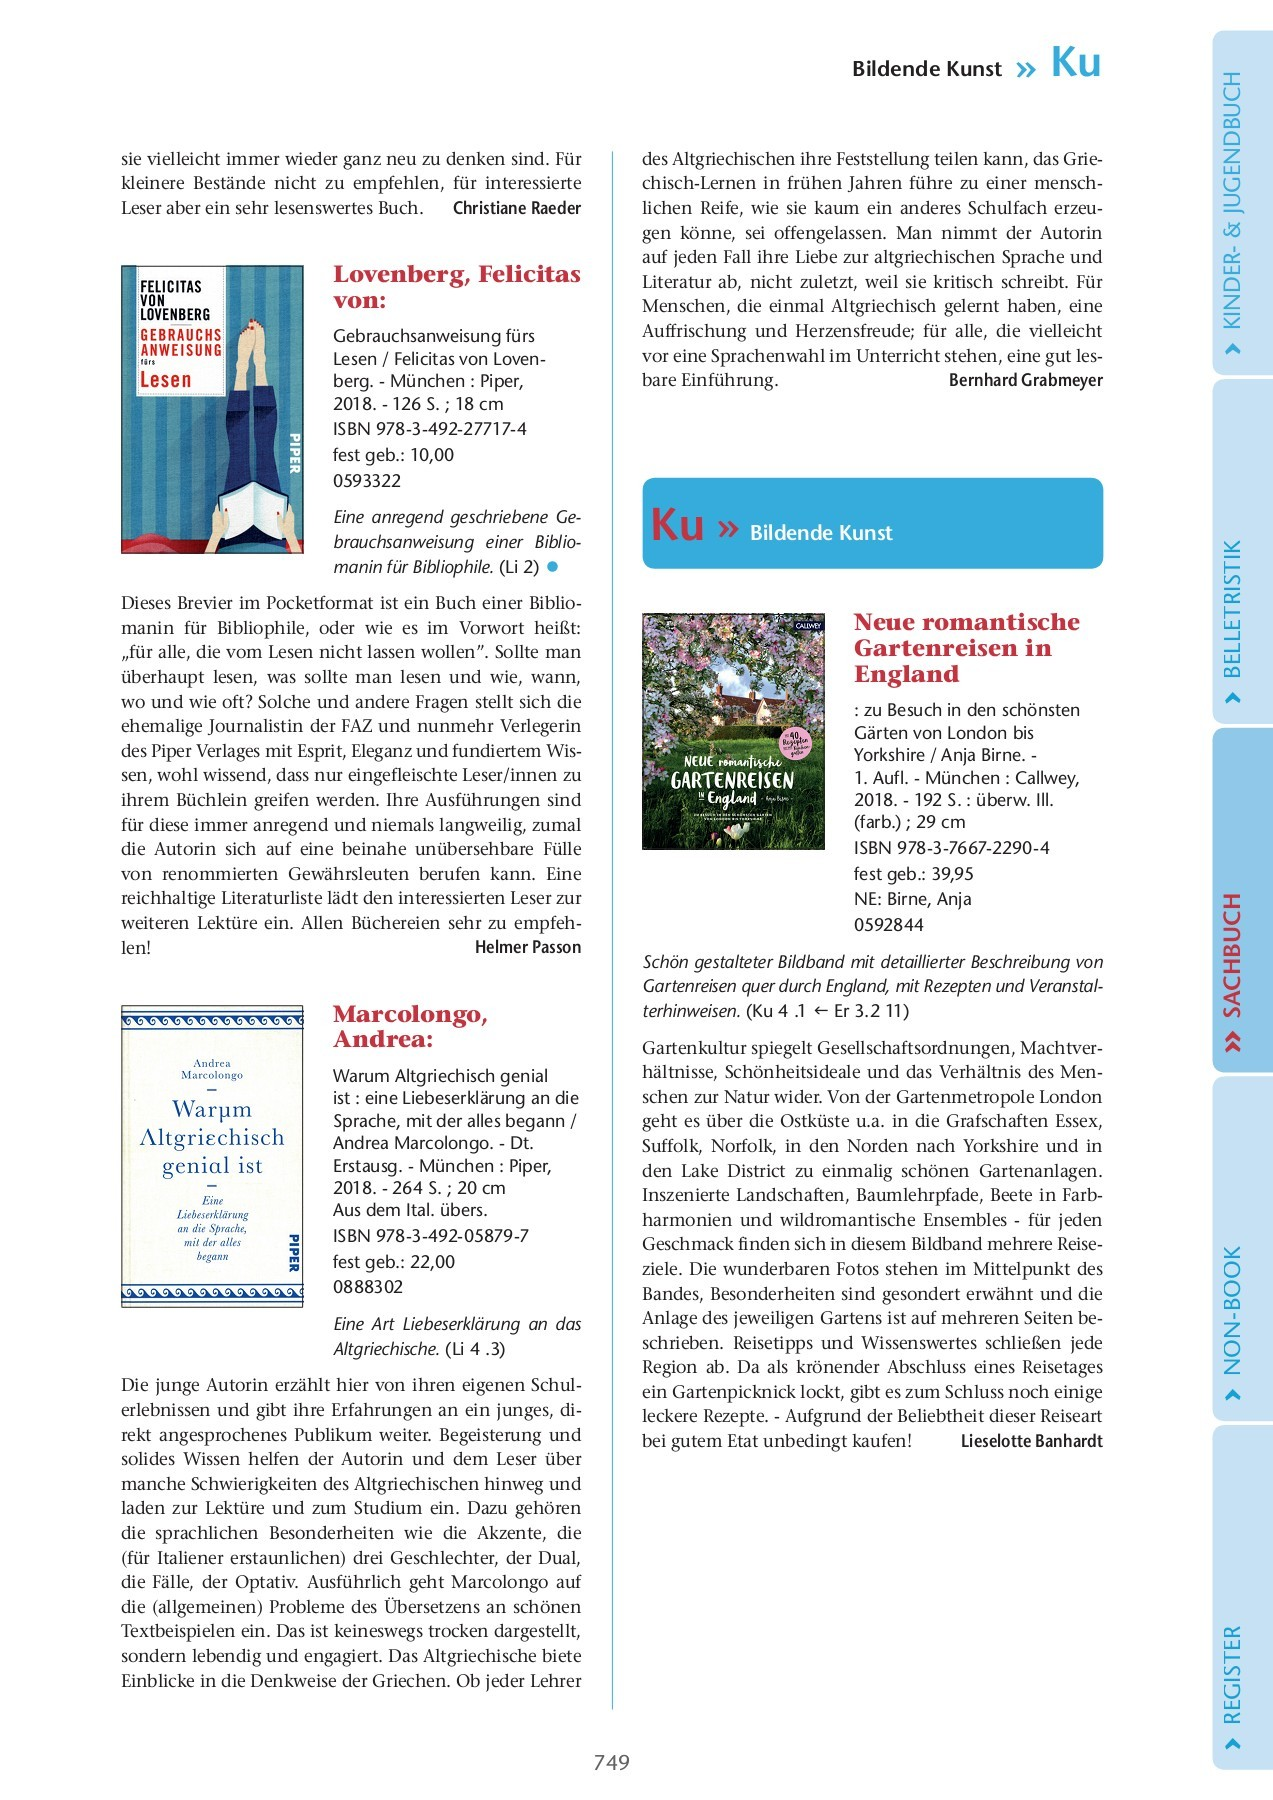 Medienprofile 3 2018 Pages 201 250 Text Version Fliphtml5